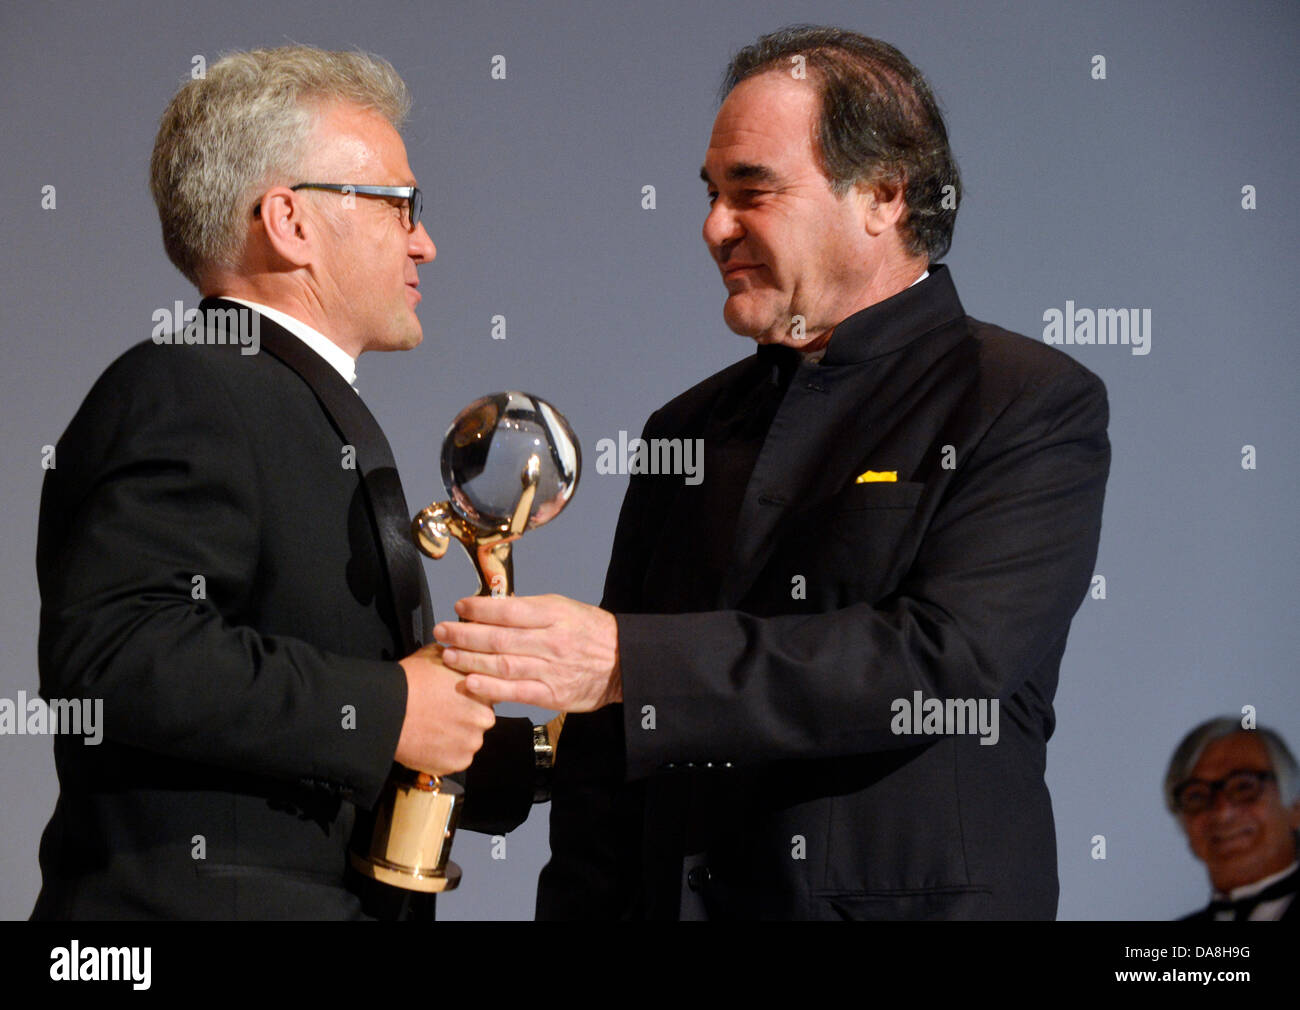 Karlovy Vary, Czech Republic. 6th July, 2013. Producer Sandor Soth (left) took over the Crystal Globe award for - Stock Image